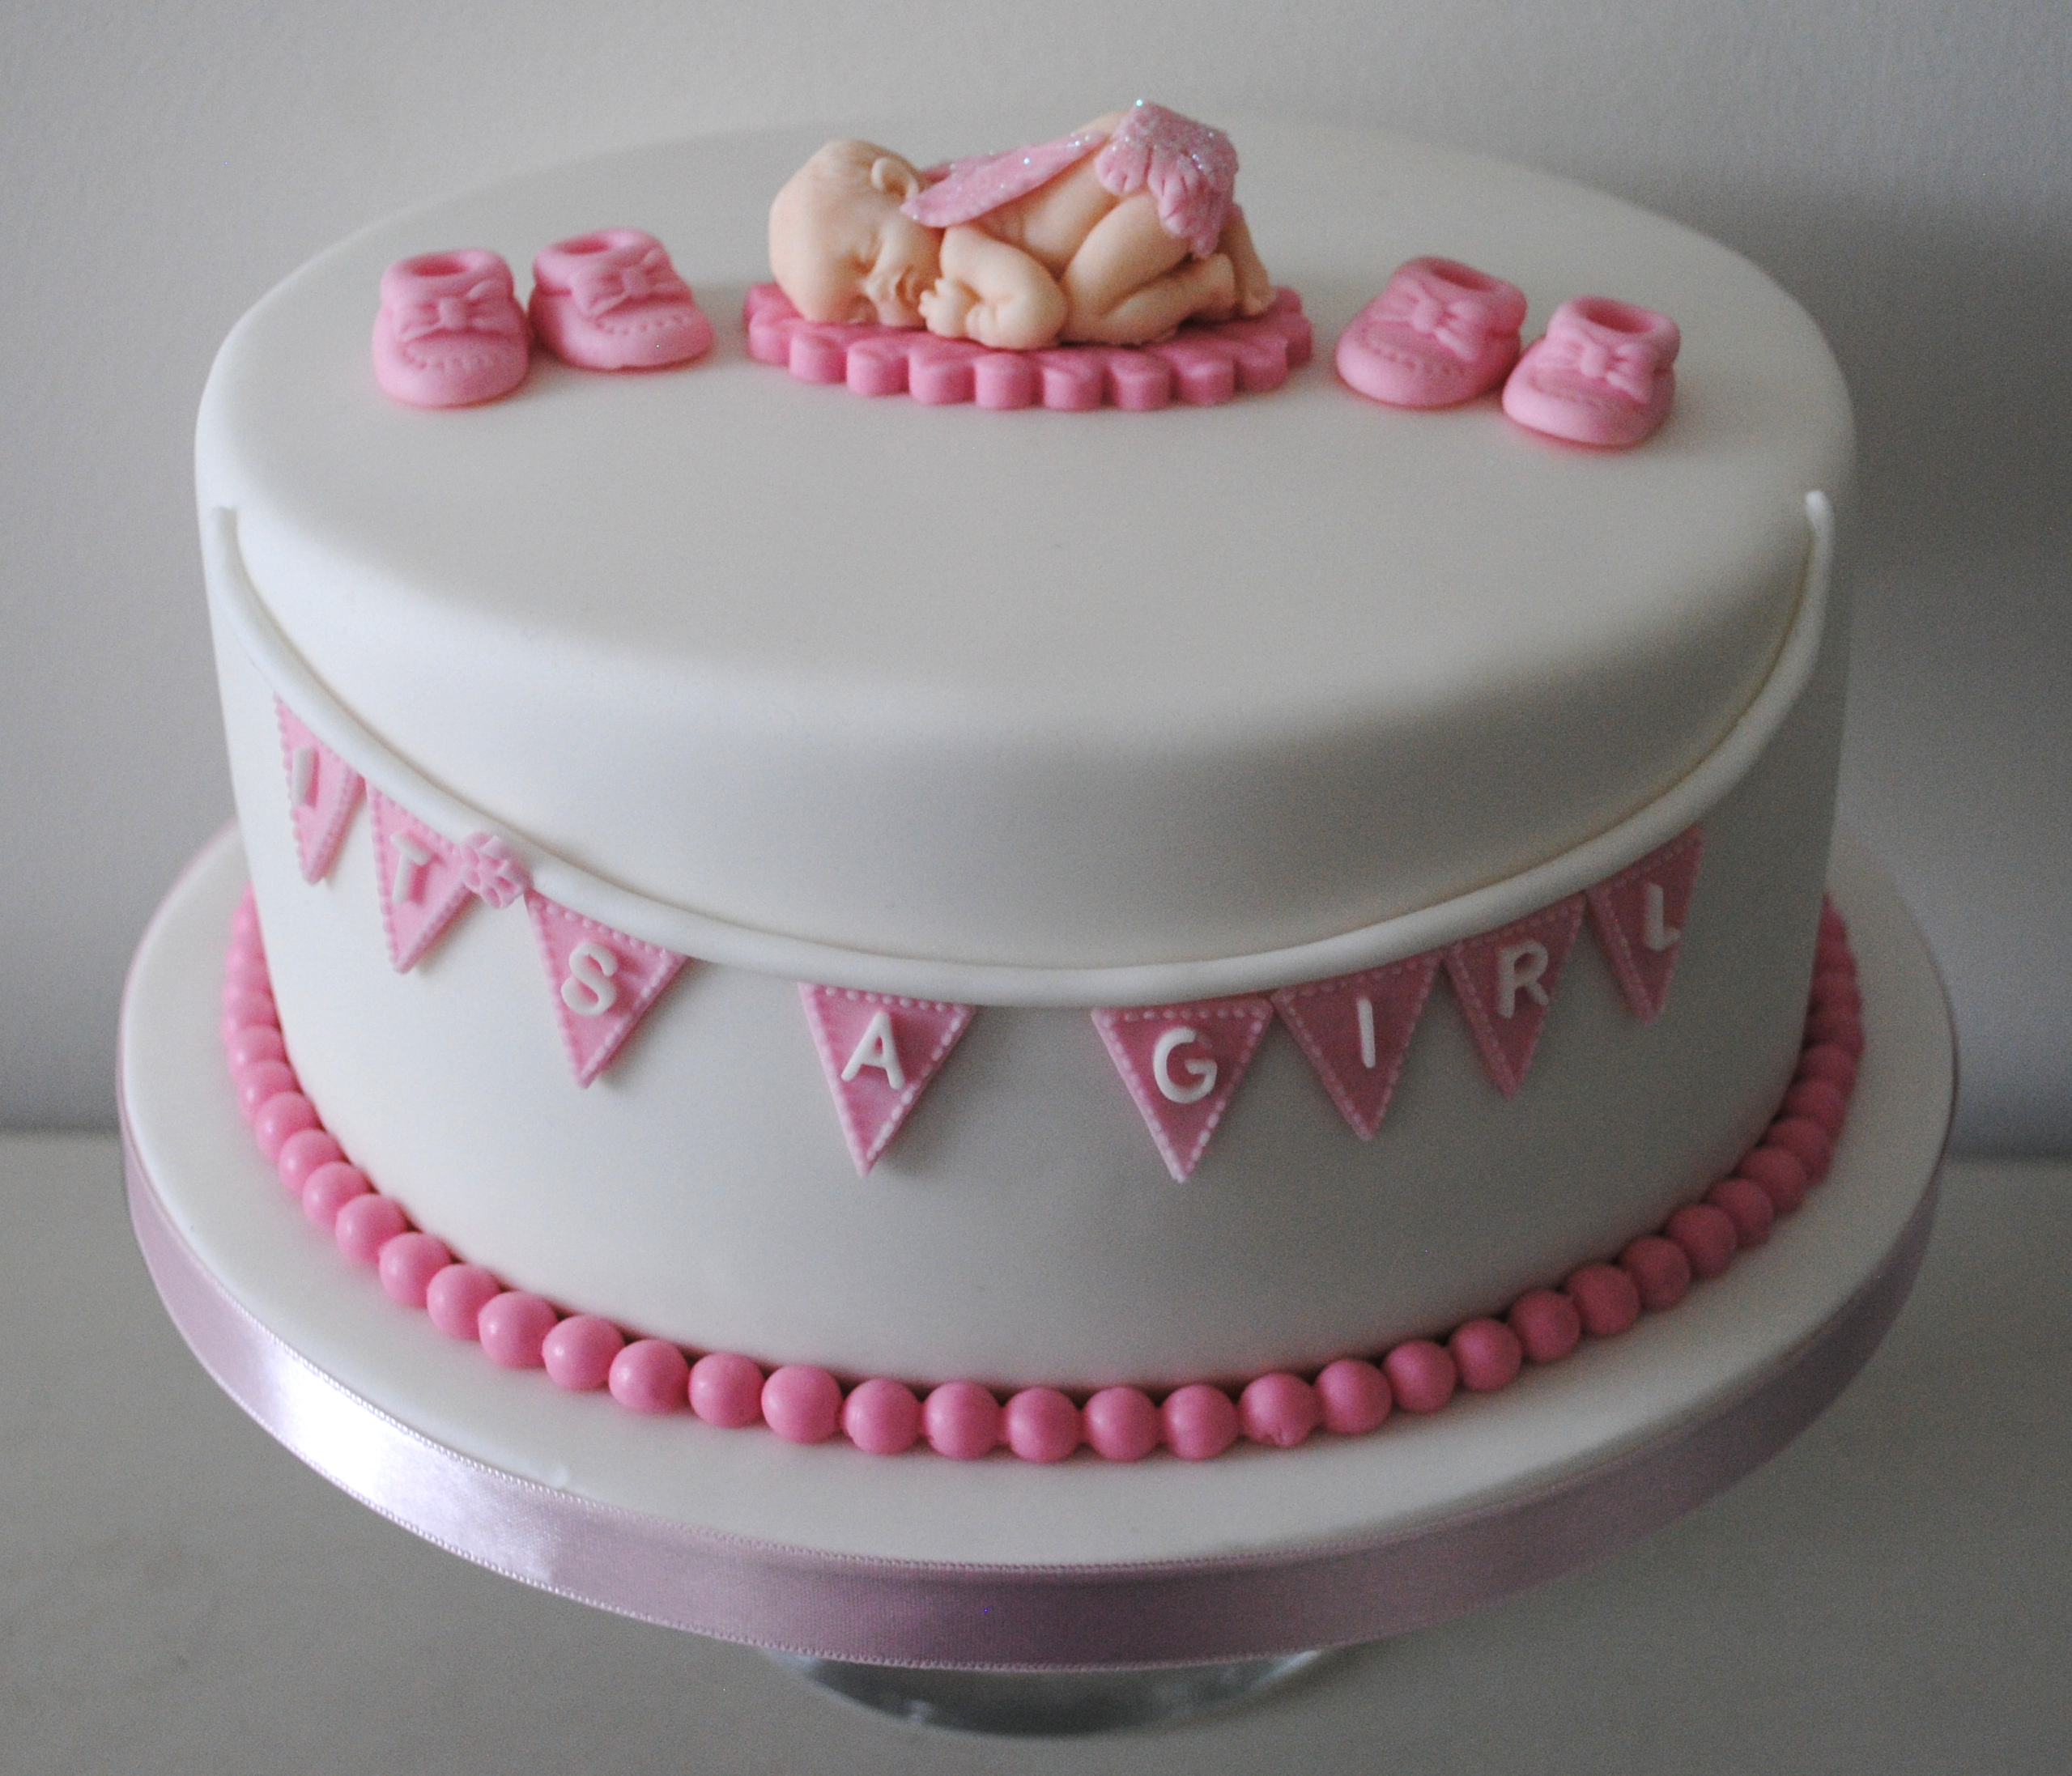 Baby Shower Cake Pictures For A Girl : Images tagged